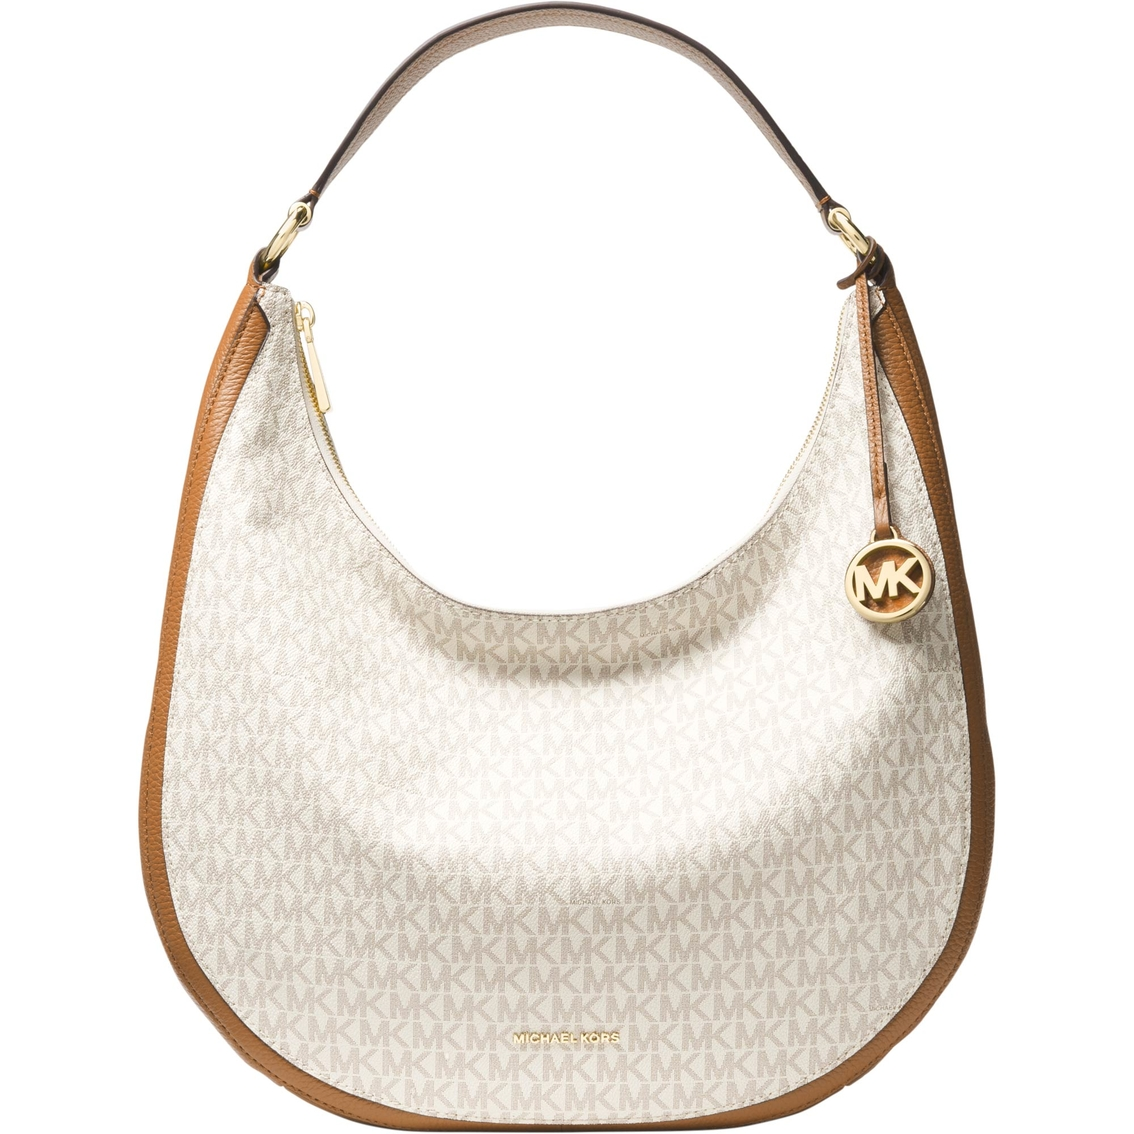 928eeda0f79d Michael Kors Lydia Large Hobo Signature Shoulder Bag